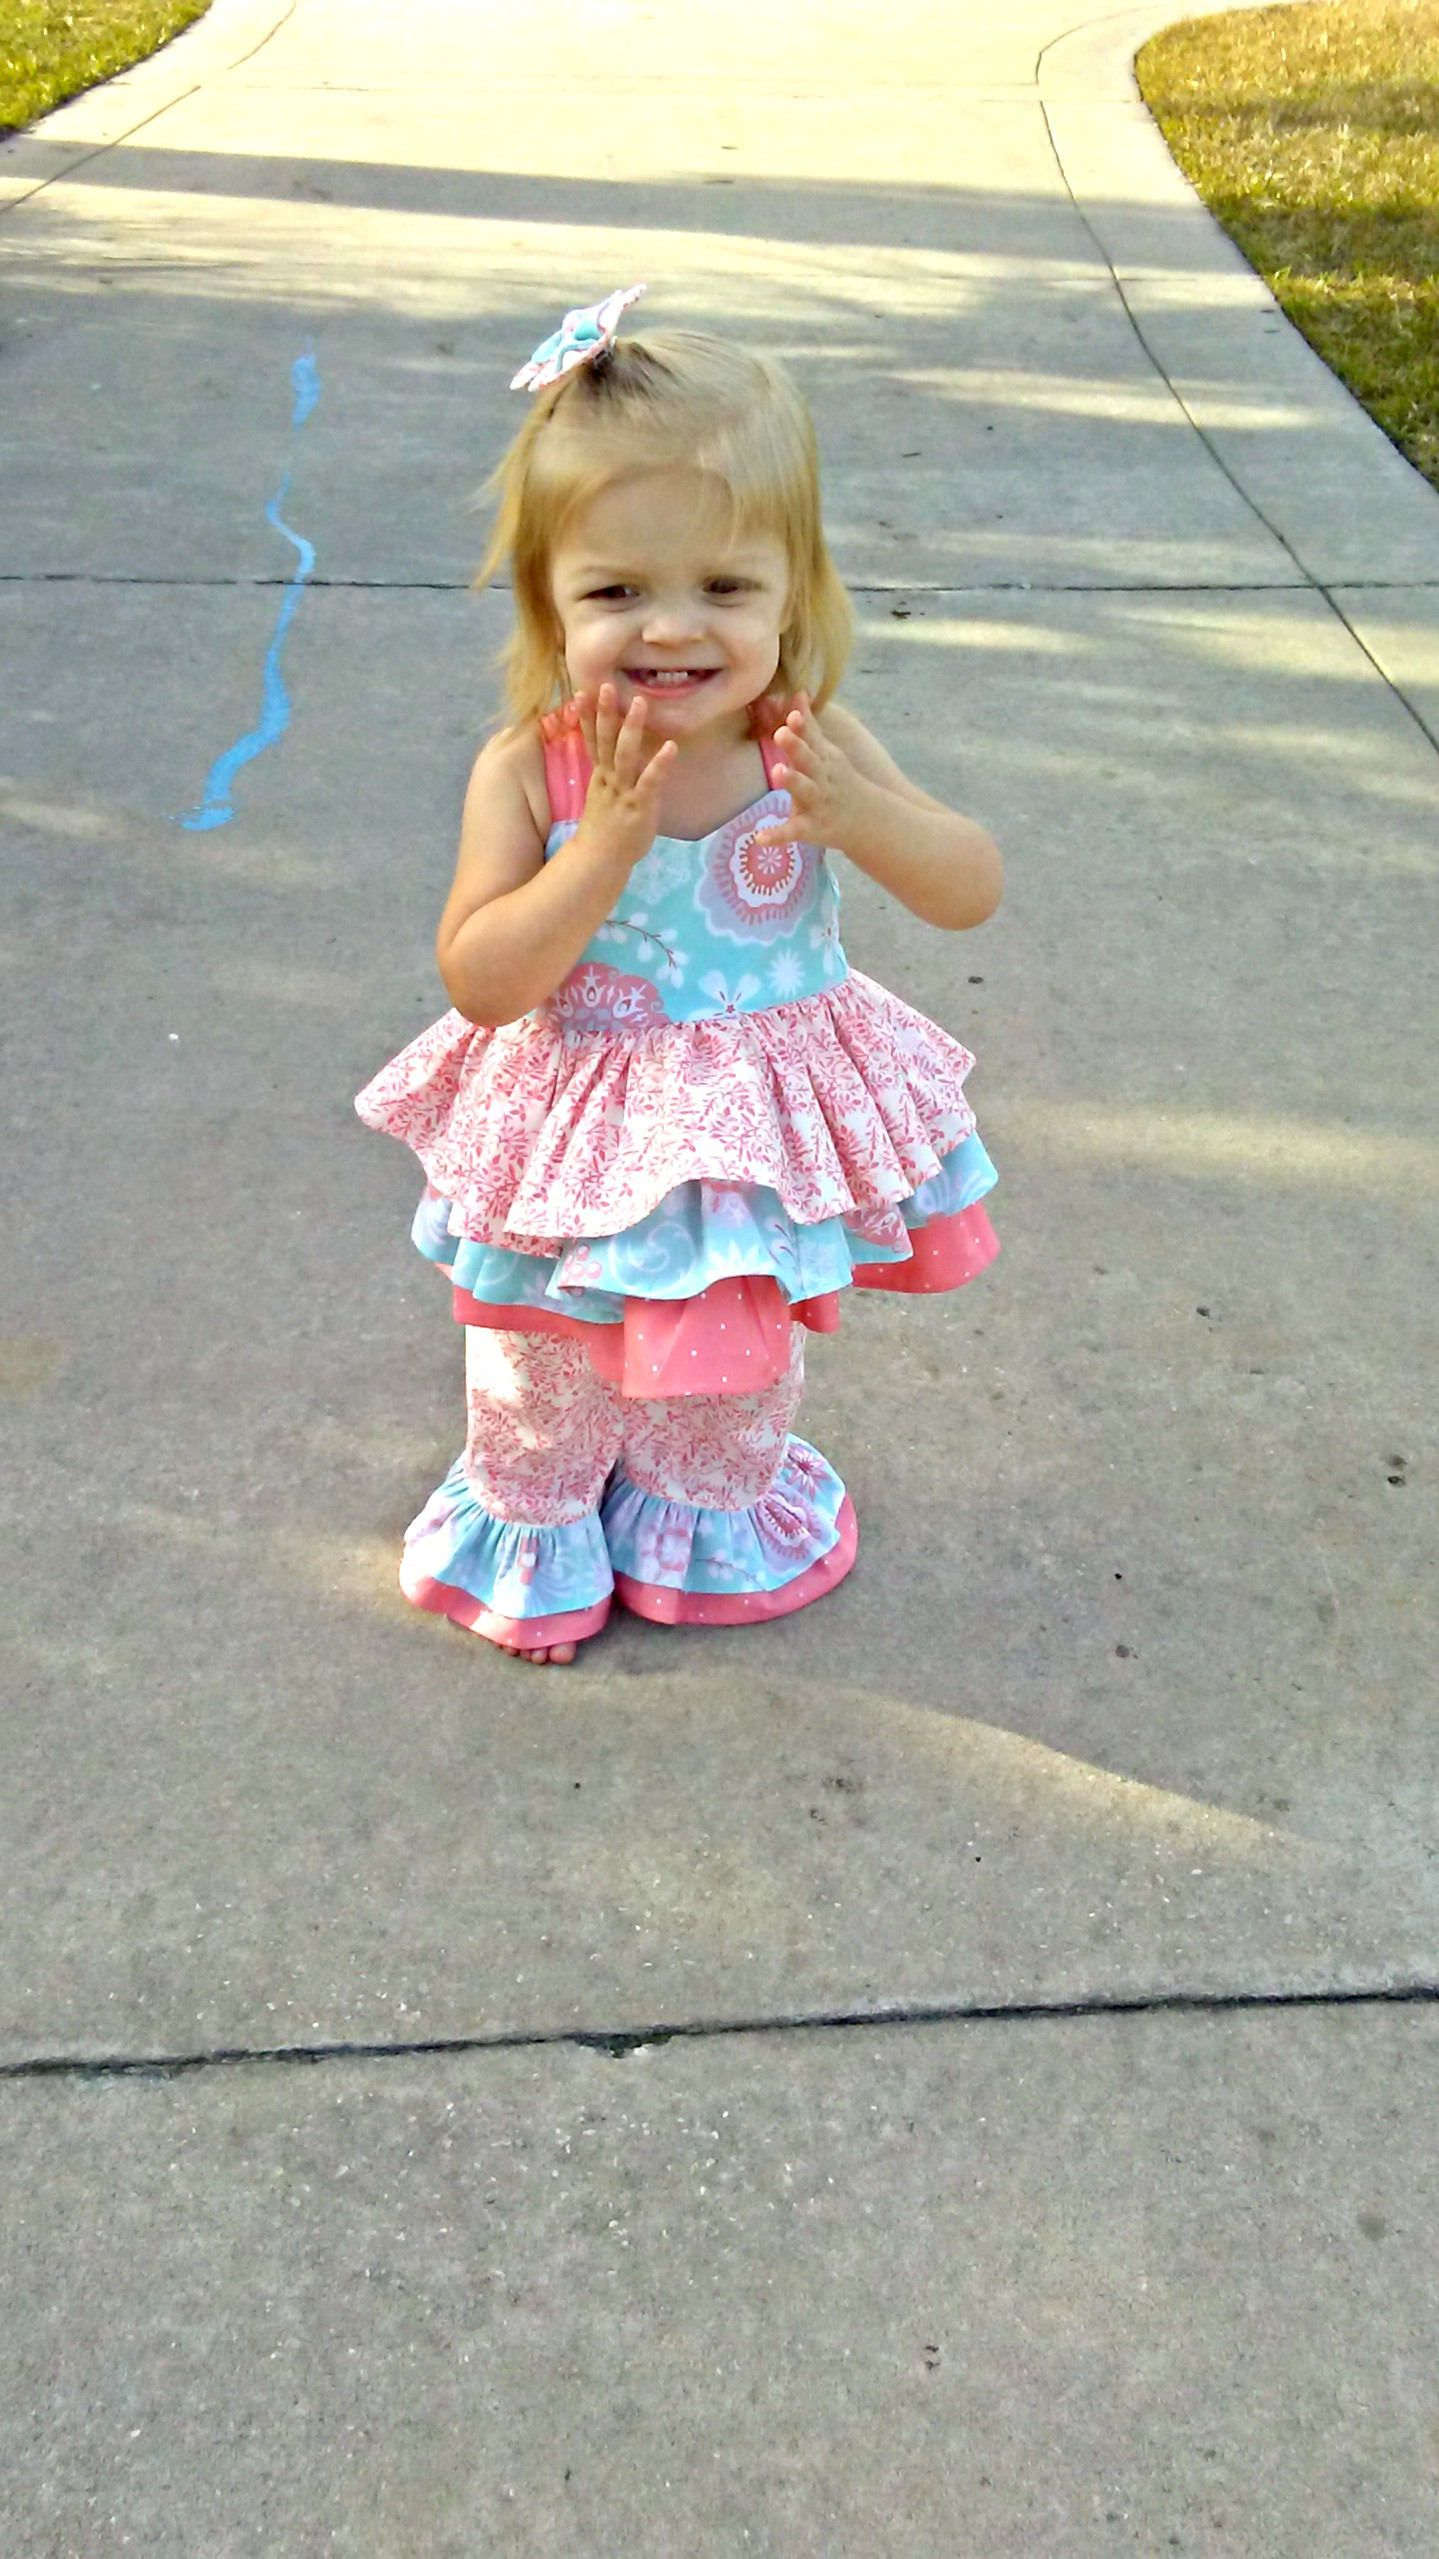 Girls Ruffle Outfit Girls Easter Outfit Ruffle Boutique Outfit Ruffle Outfit Toddler Ea Toddler Outfits Baby Girl Spring Outfits Toddler Easter Outfits